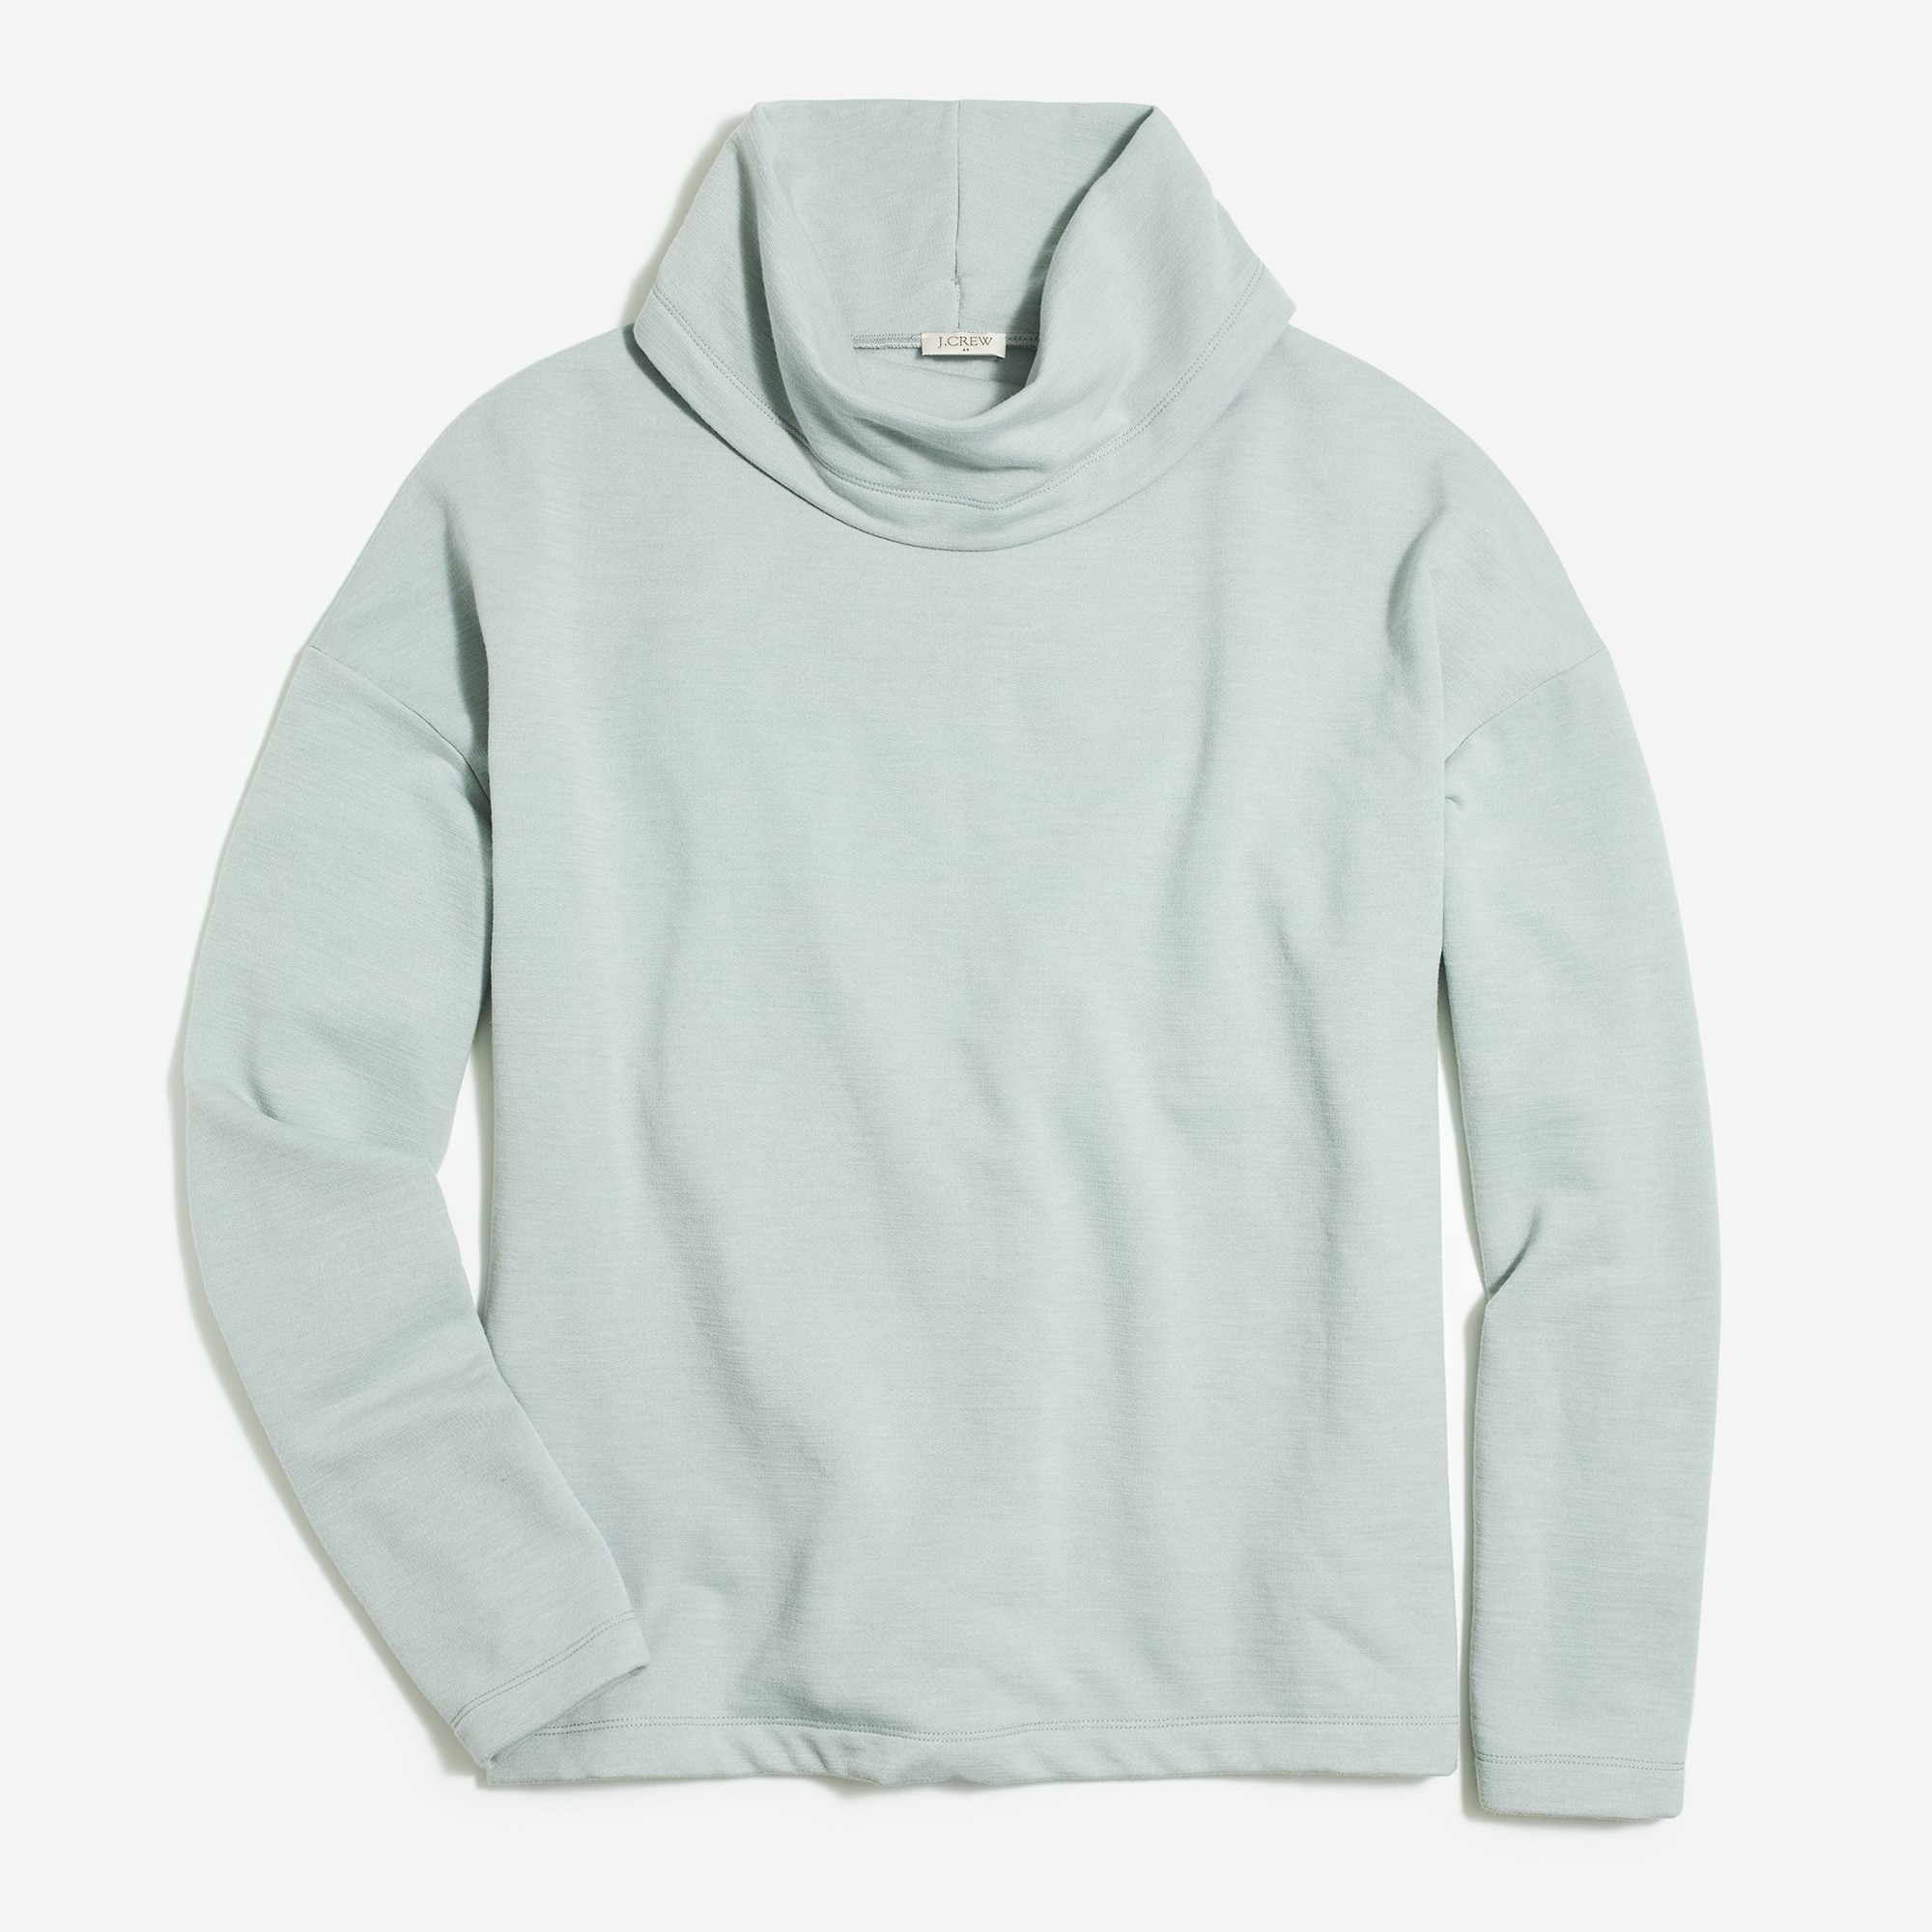 Image 1 for Tunnelneck pullover sweatshirt